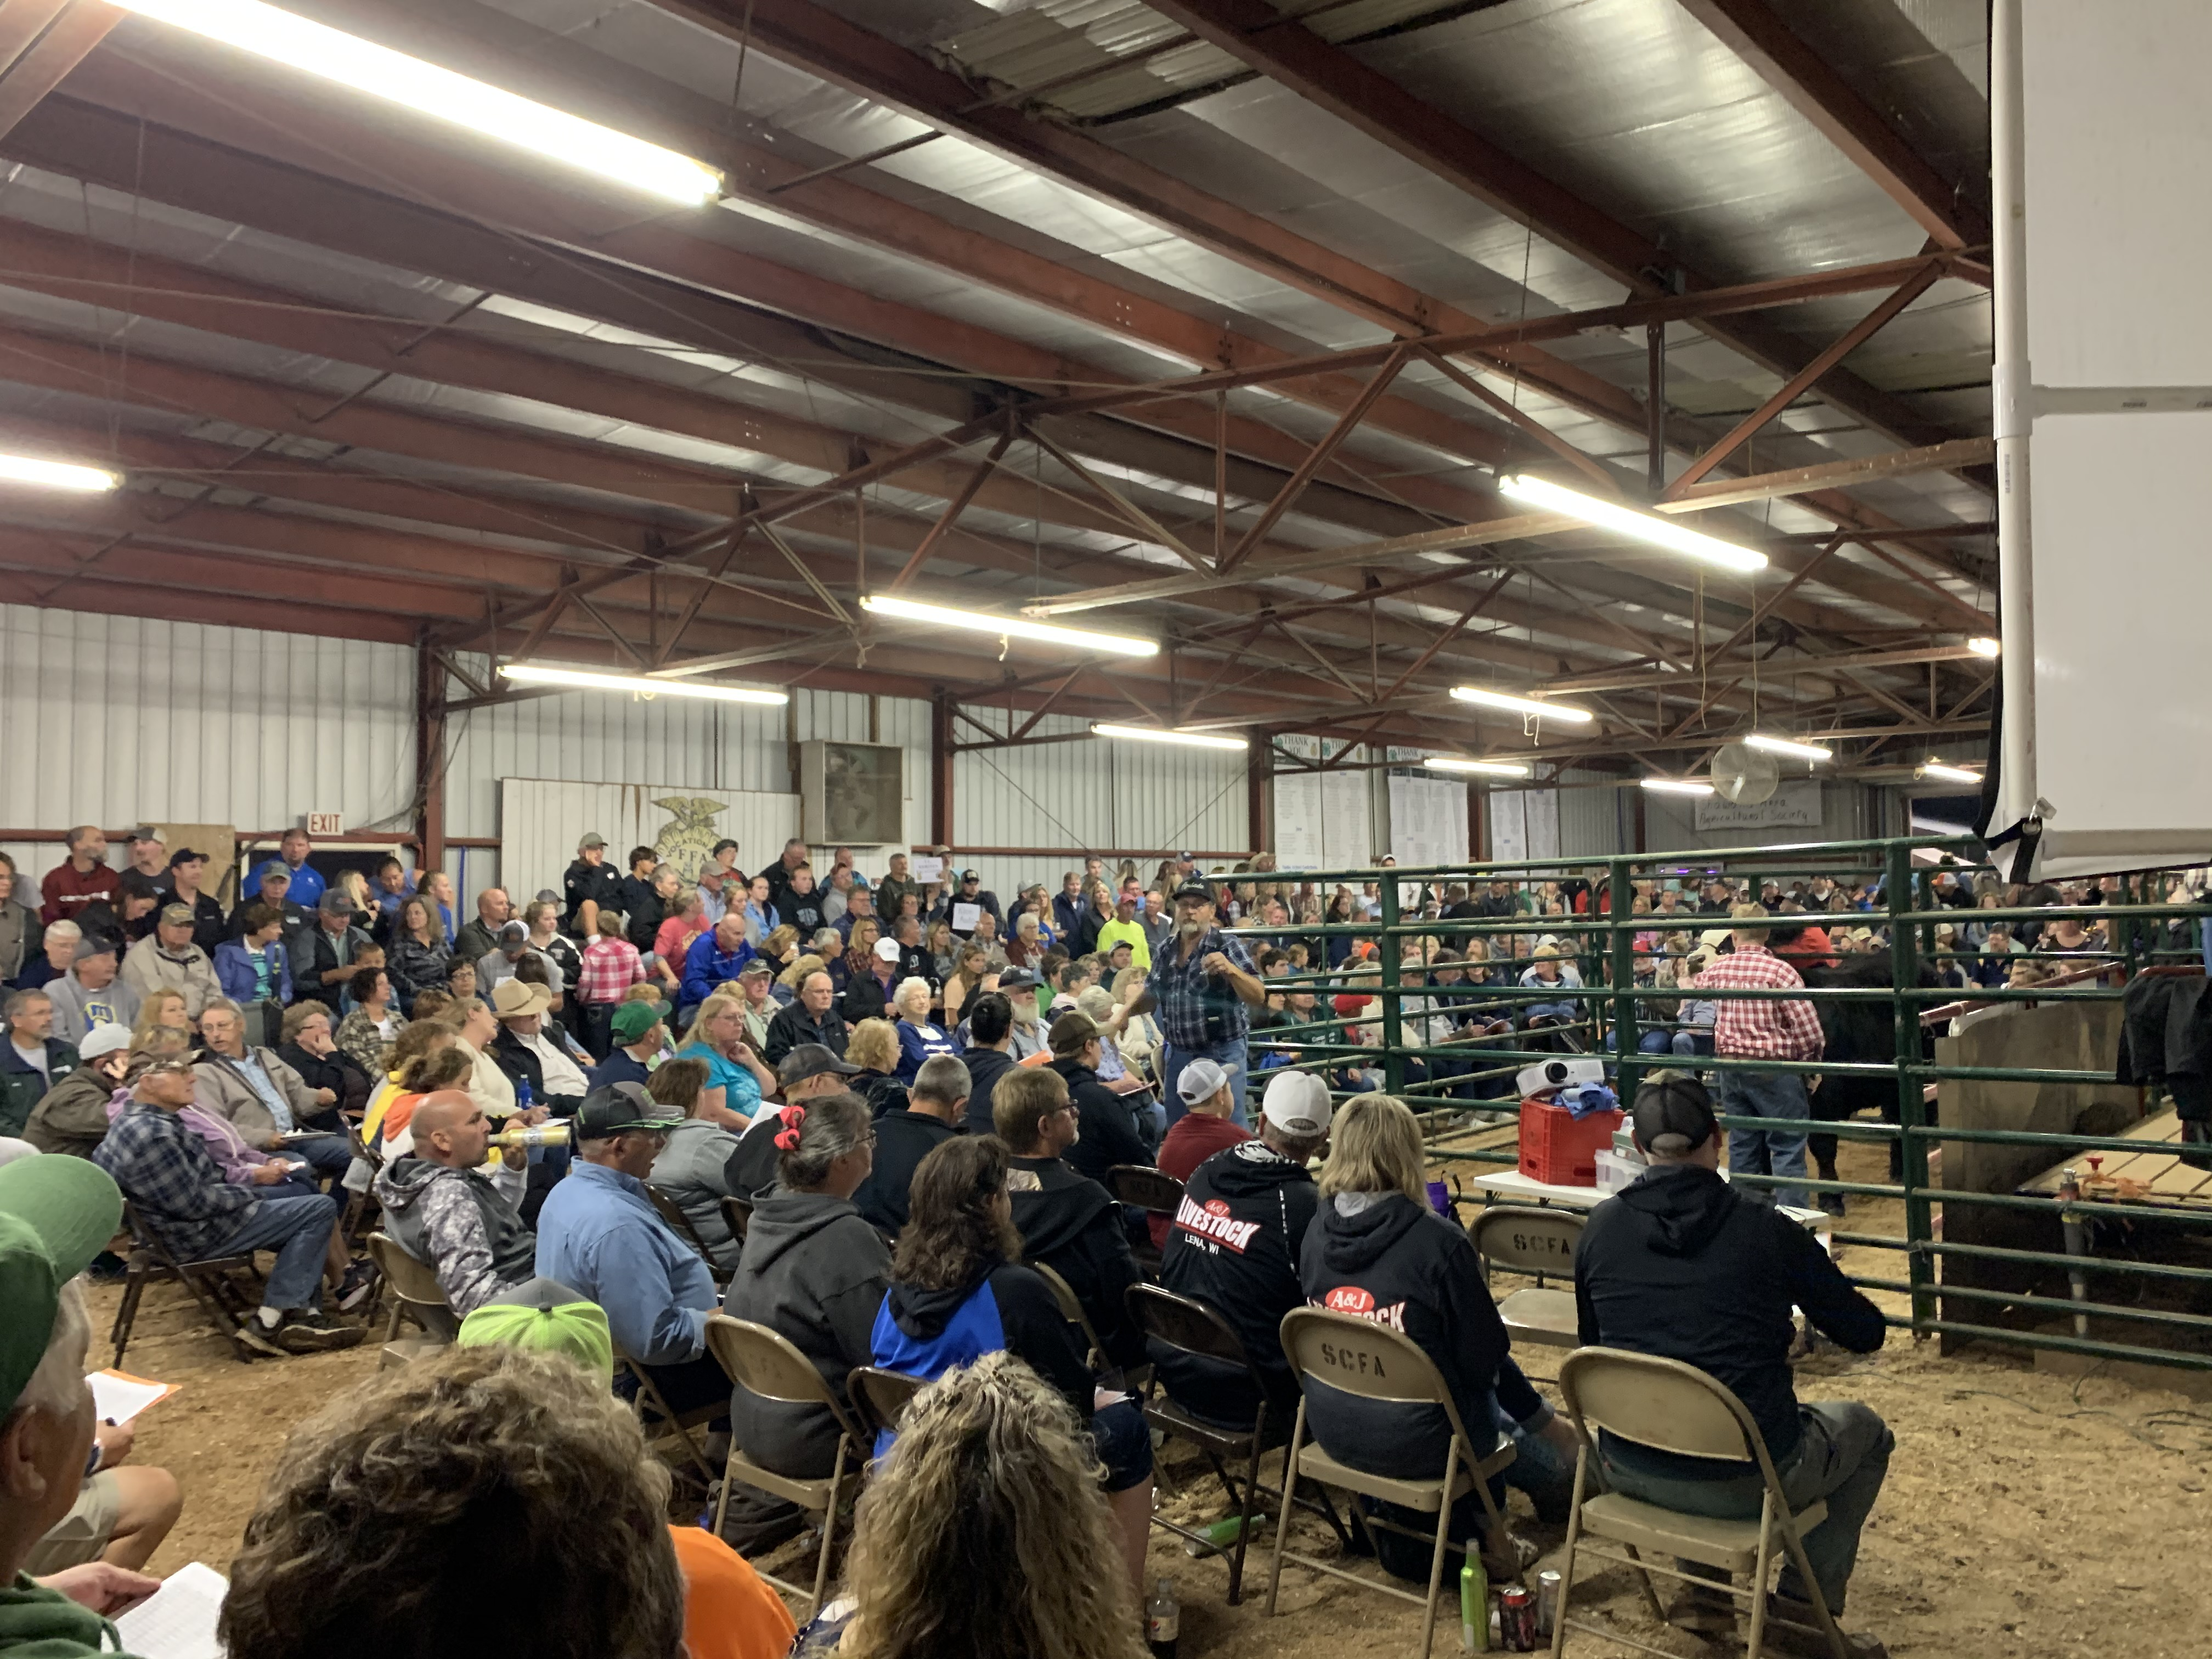 The Coliseum was packed with visitors that wanted to bid on livestock at the Shawano County Fair during the livestock auction on Sept. 3.(Luke Reimer   NEW Media)